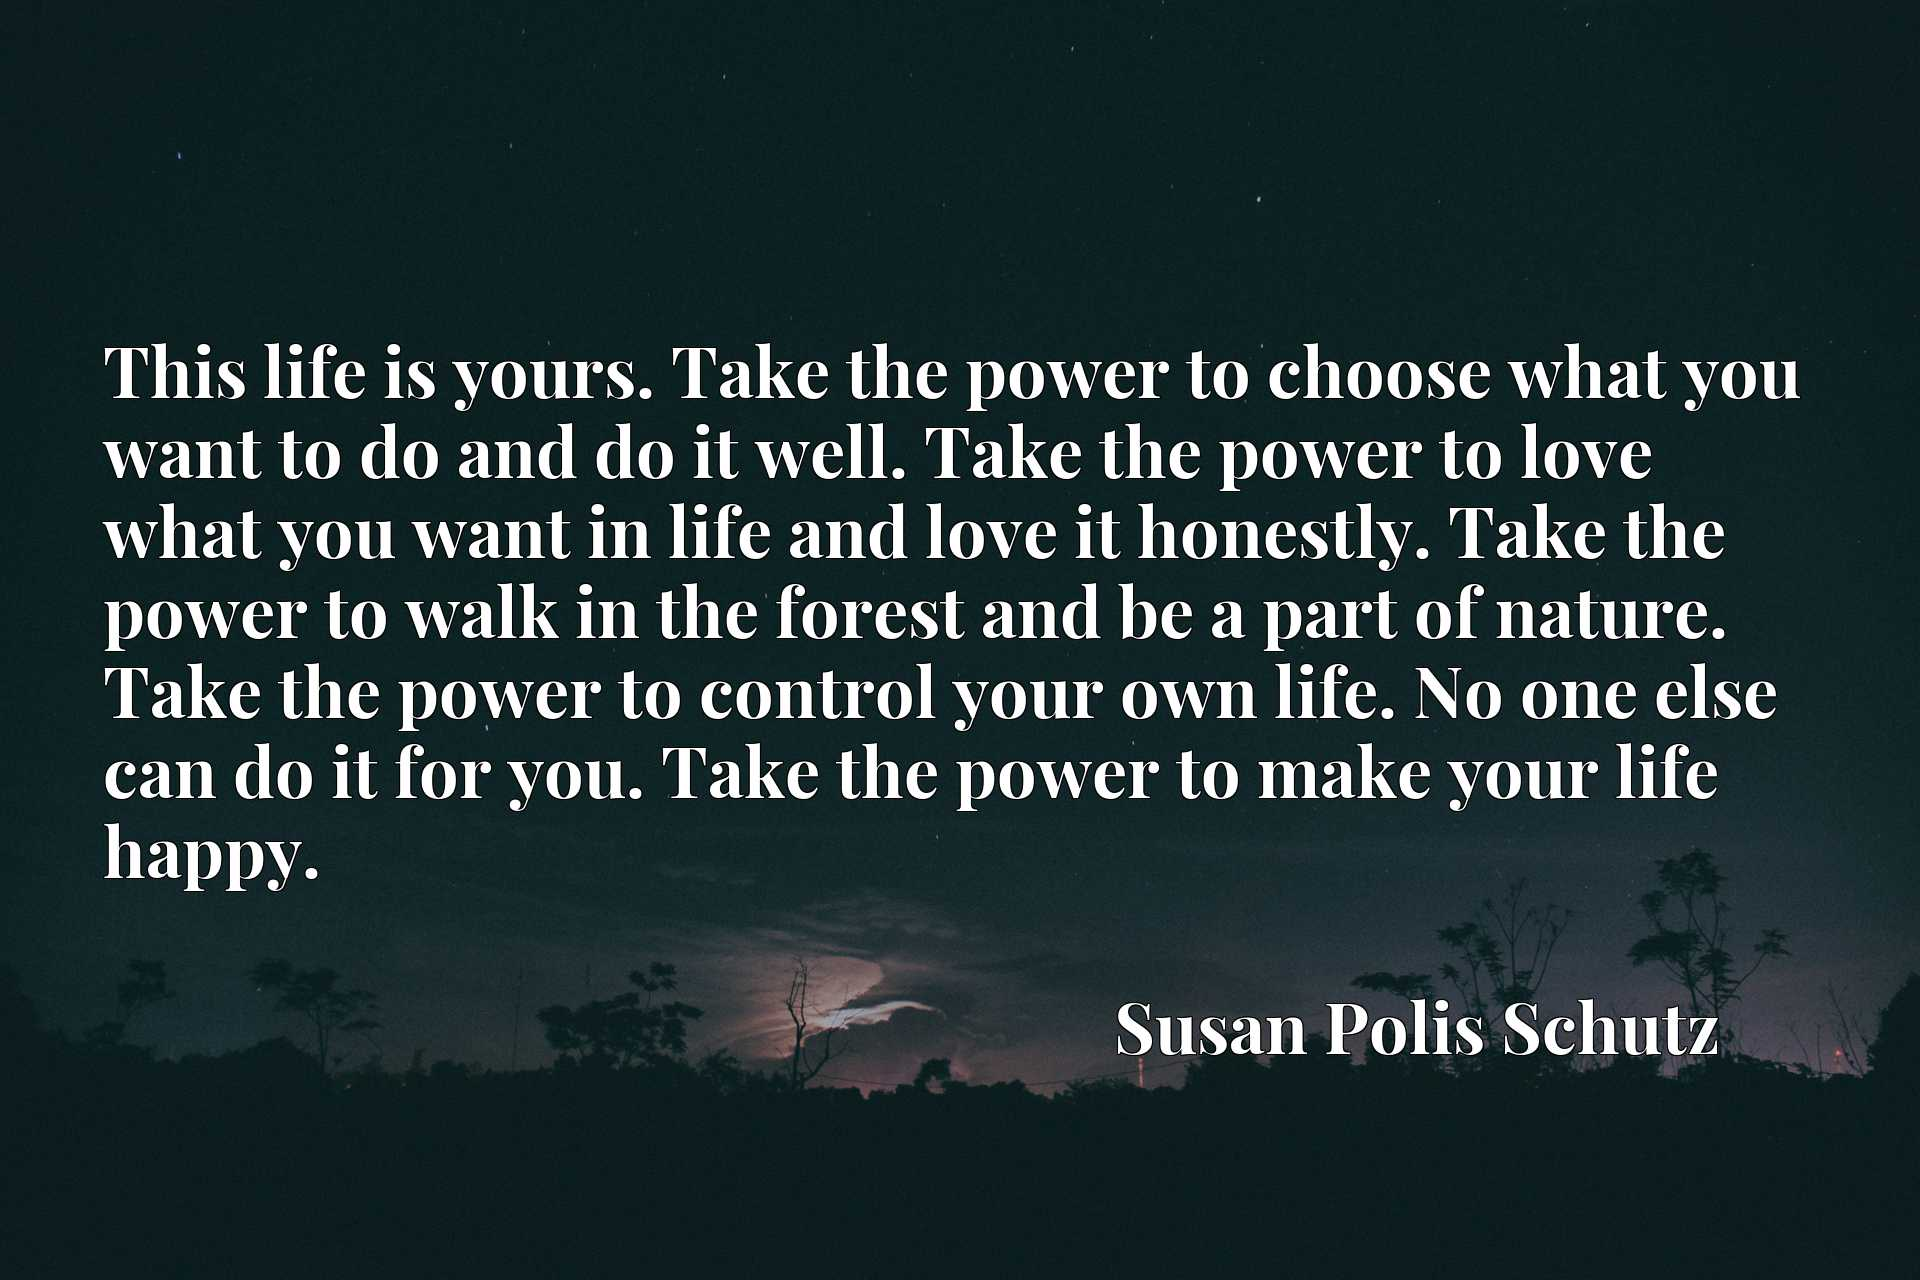 This life is yours. Take the power to choose what you want to do and do it well. Take the power to love what you want in life and love it honestly. Take the power to walk in the forest and be a part of nature. Take the power to control your own life. No one else can do it for you. Take the power to make your life happy.